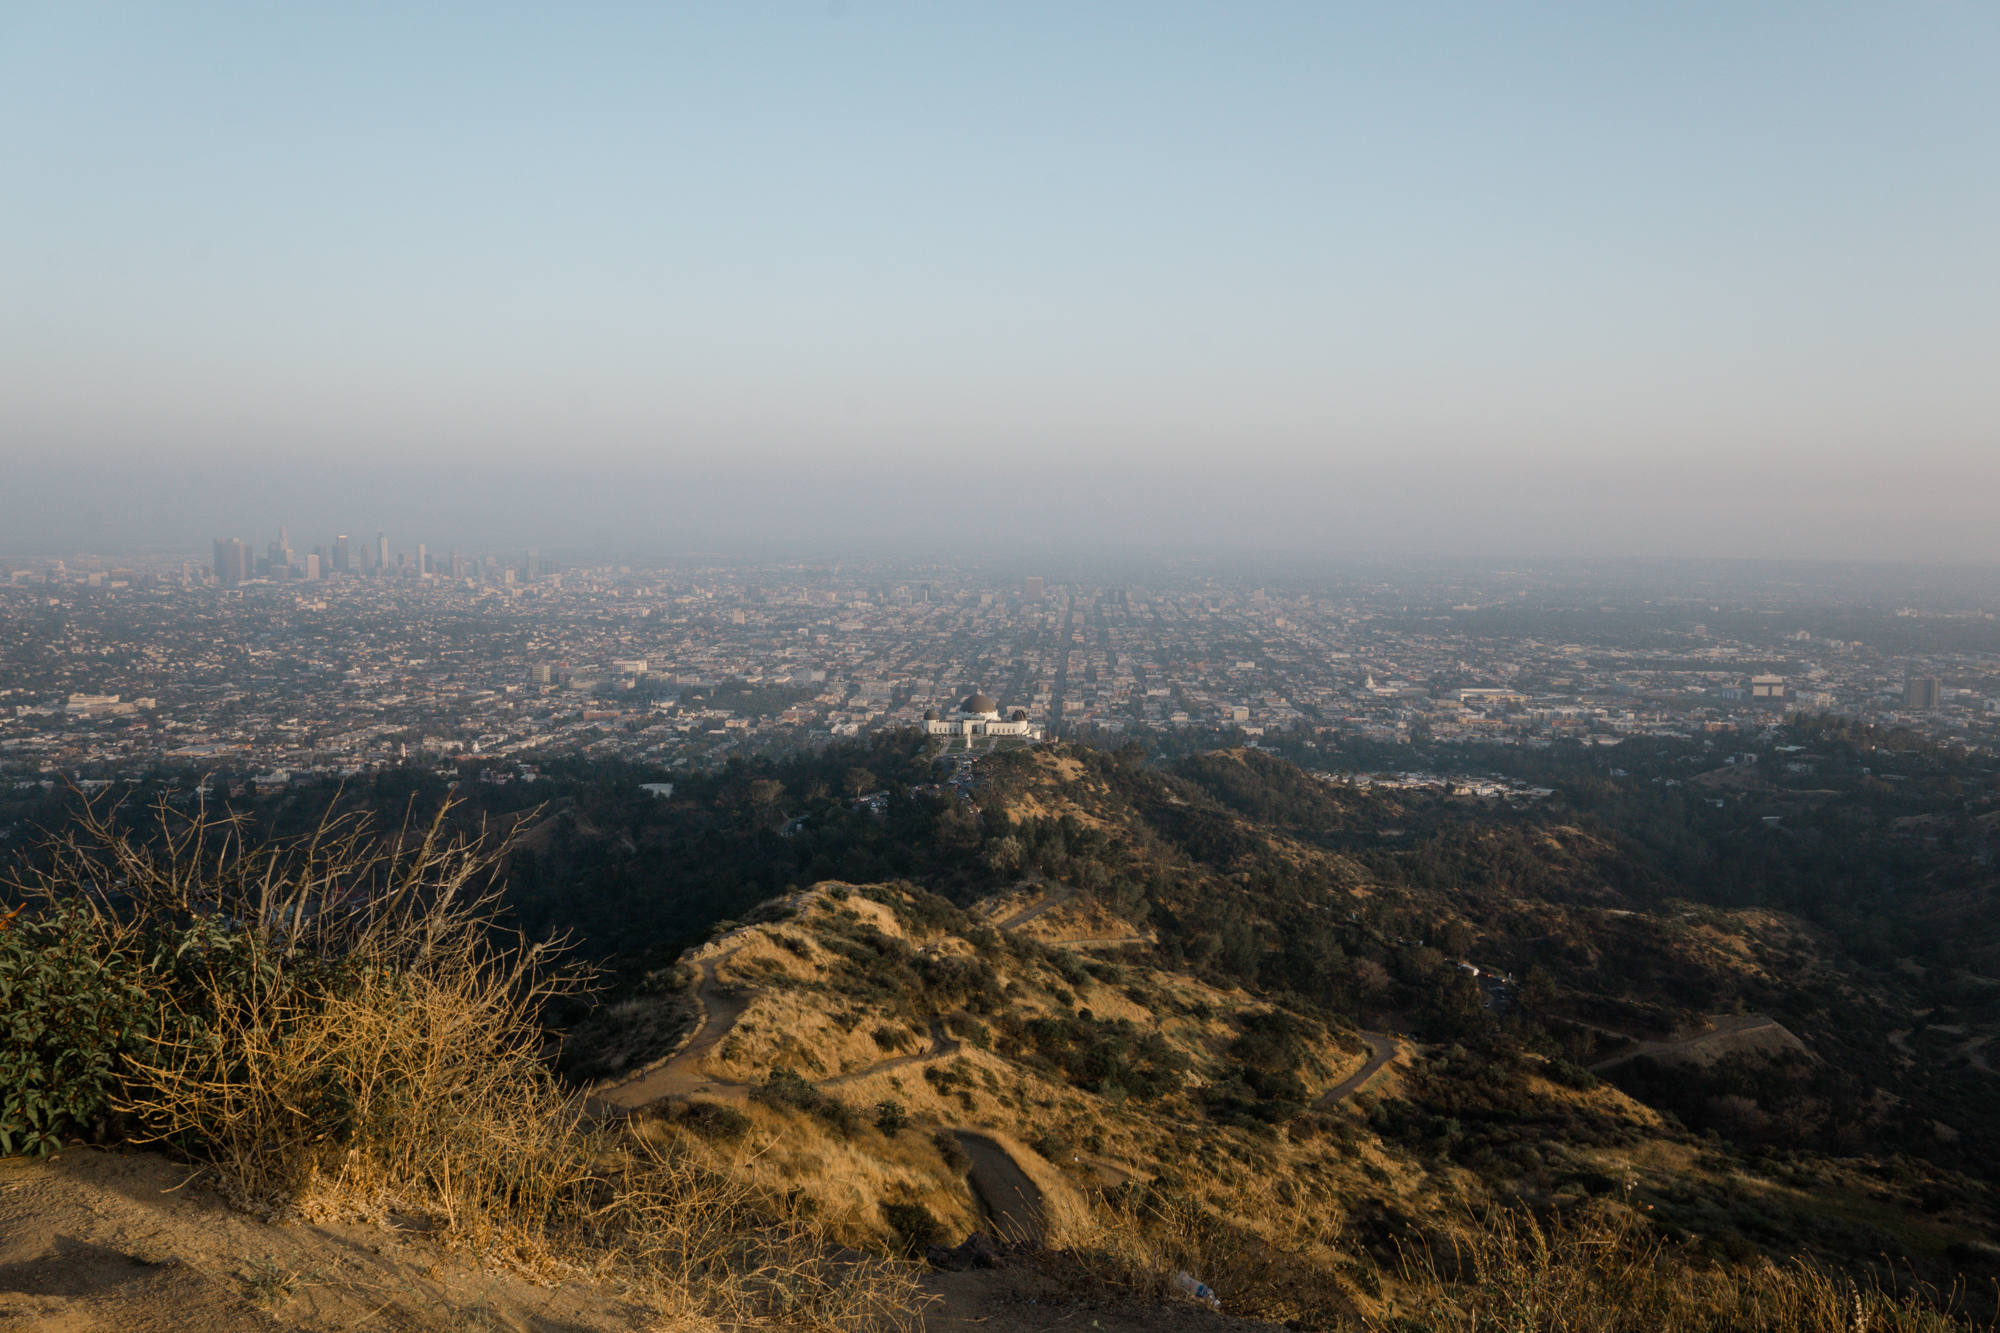 GRIFFITH PARK HIKE LOS ANGELES